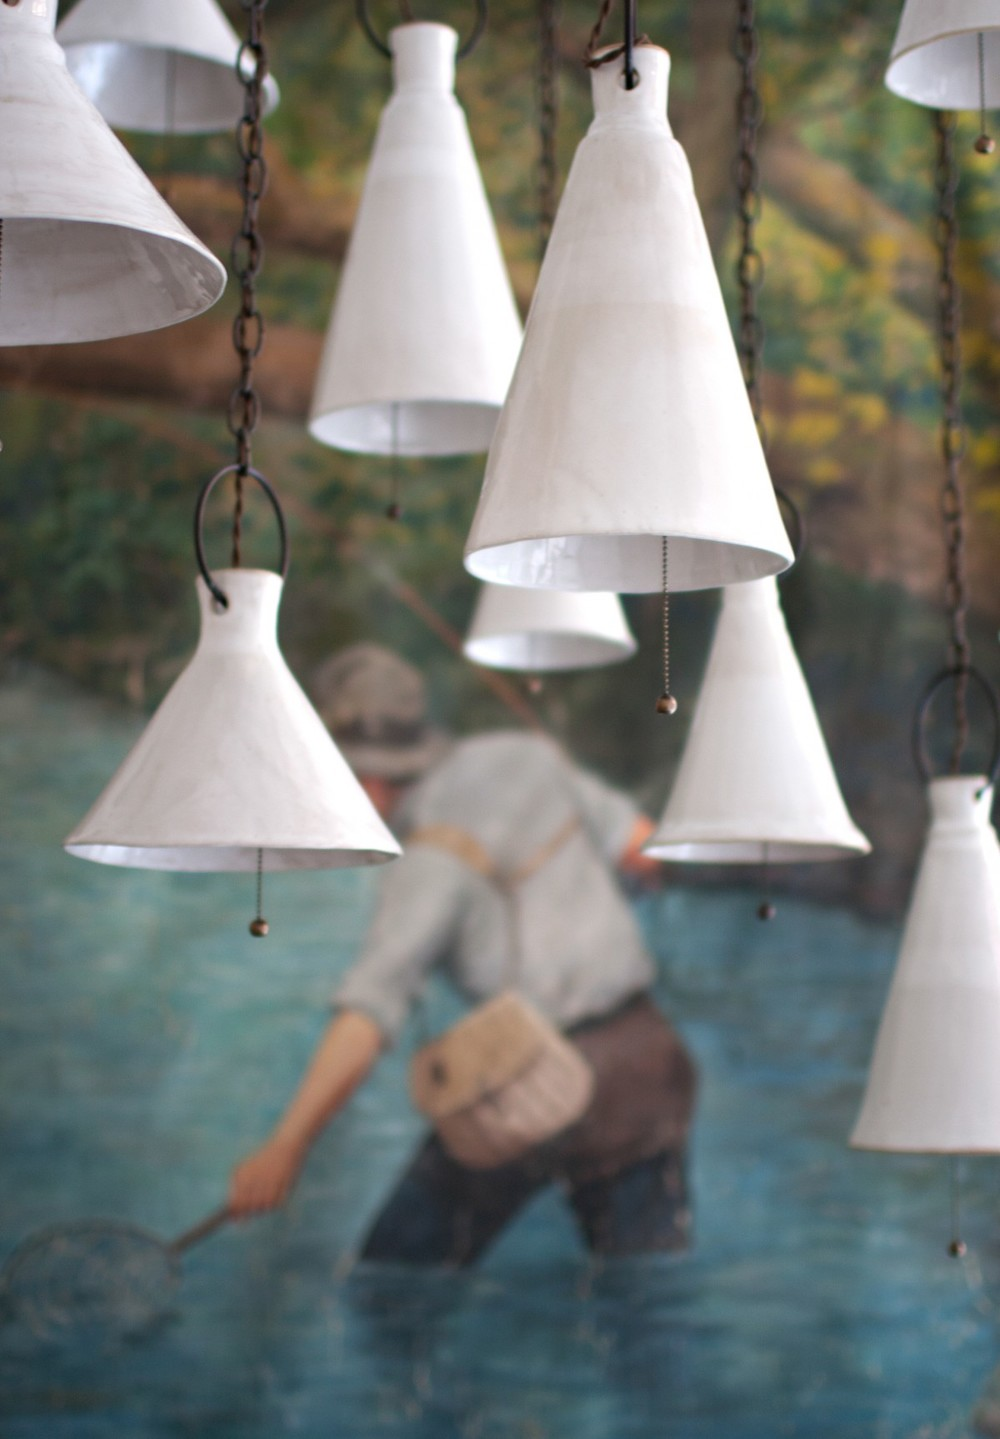 Ceramic Page Pendant Lights hand-made by Natalie Page